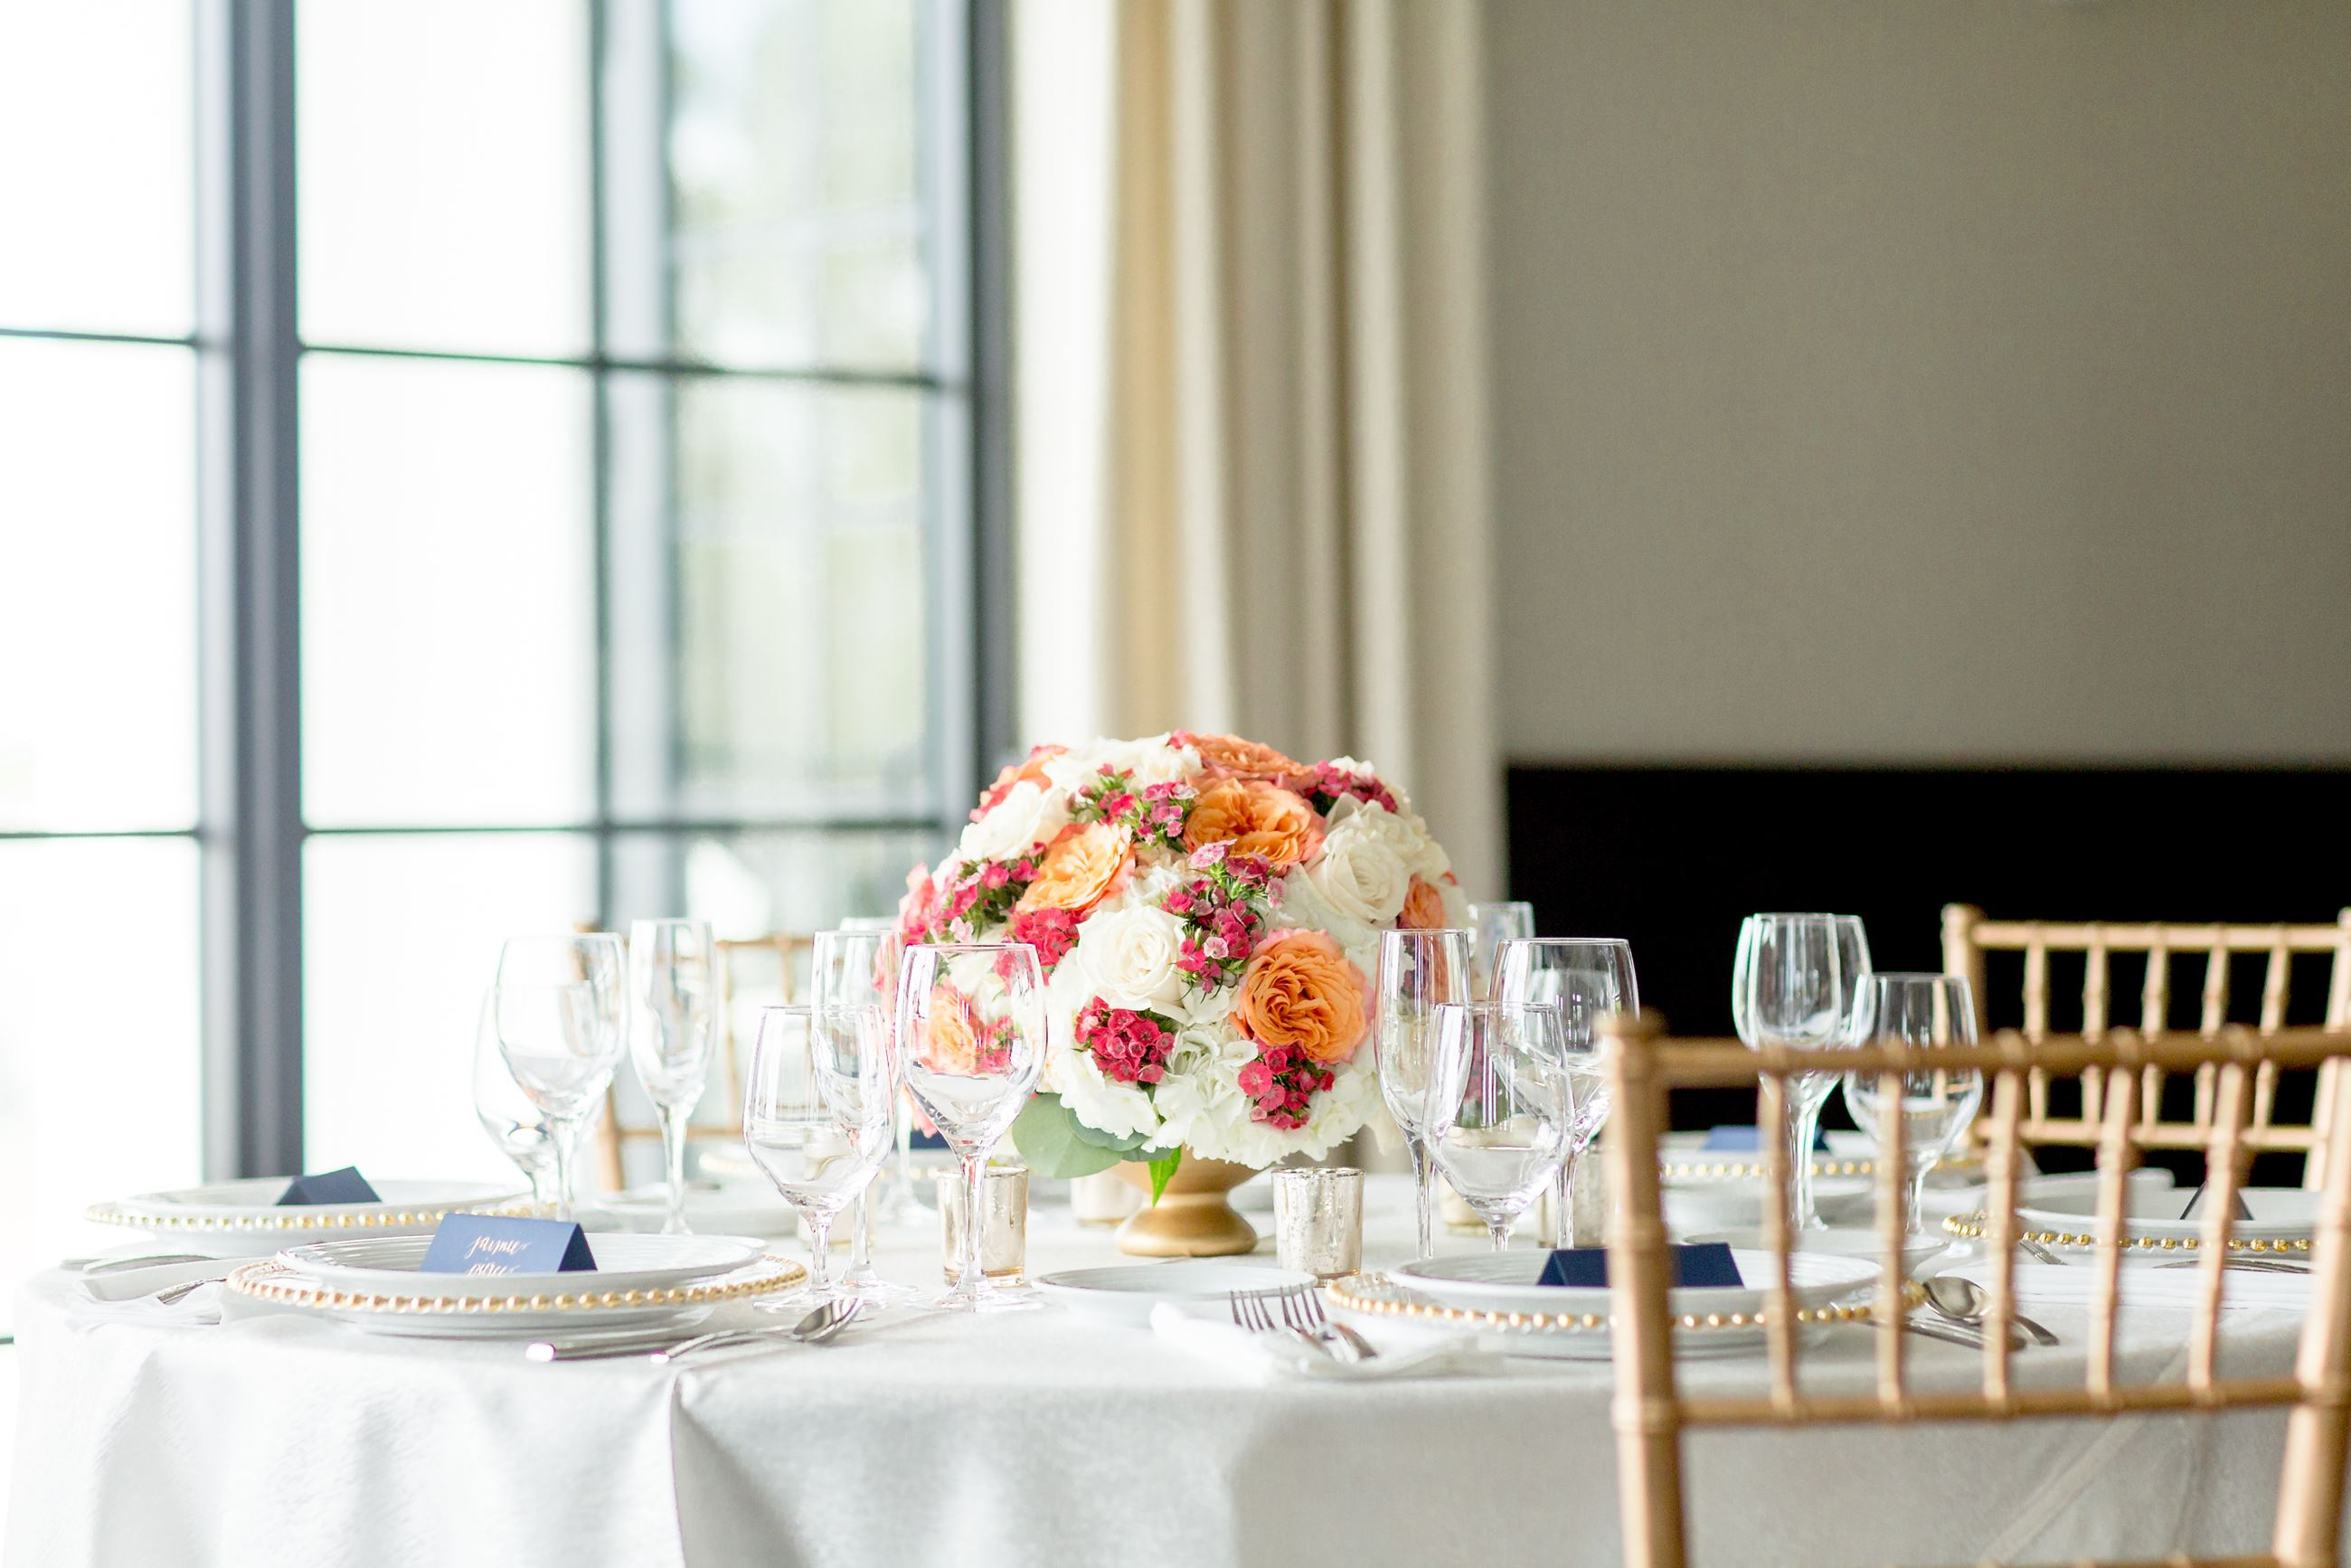 Flower centerpiece on table and gold chairs